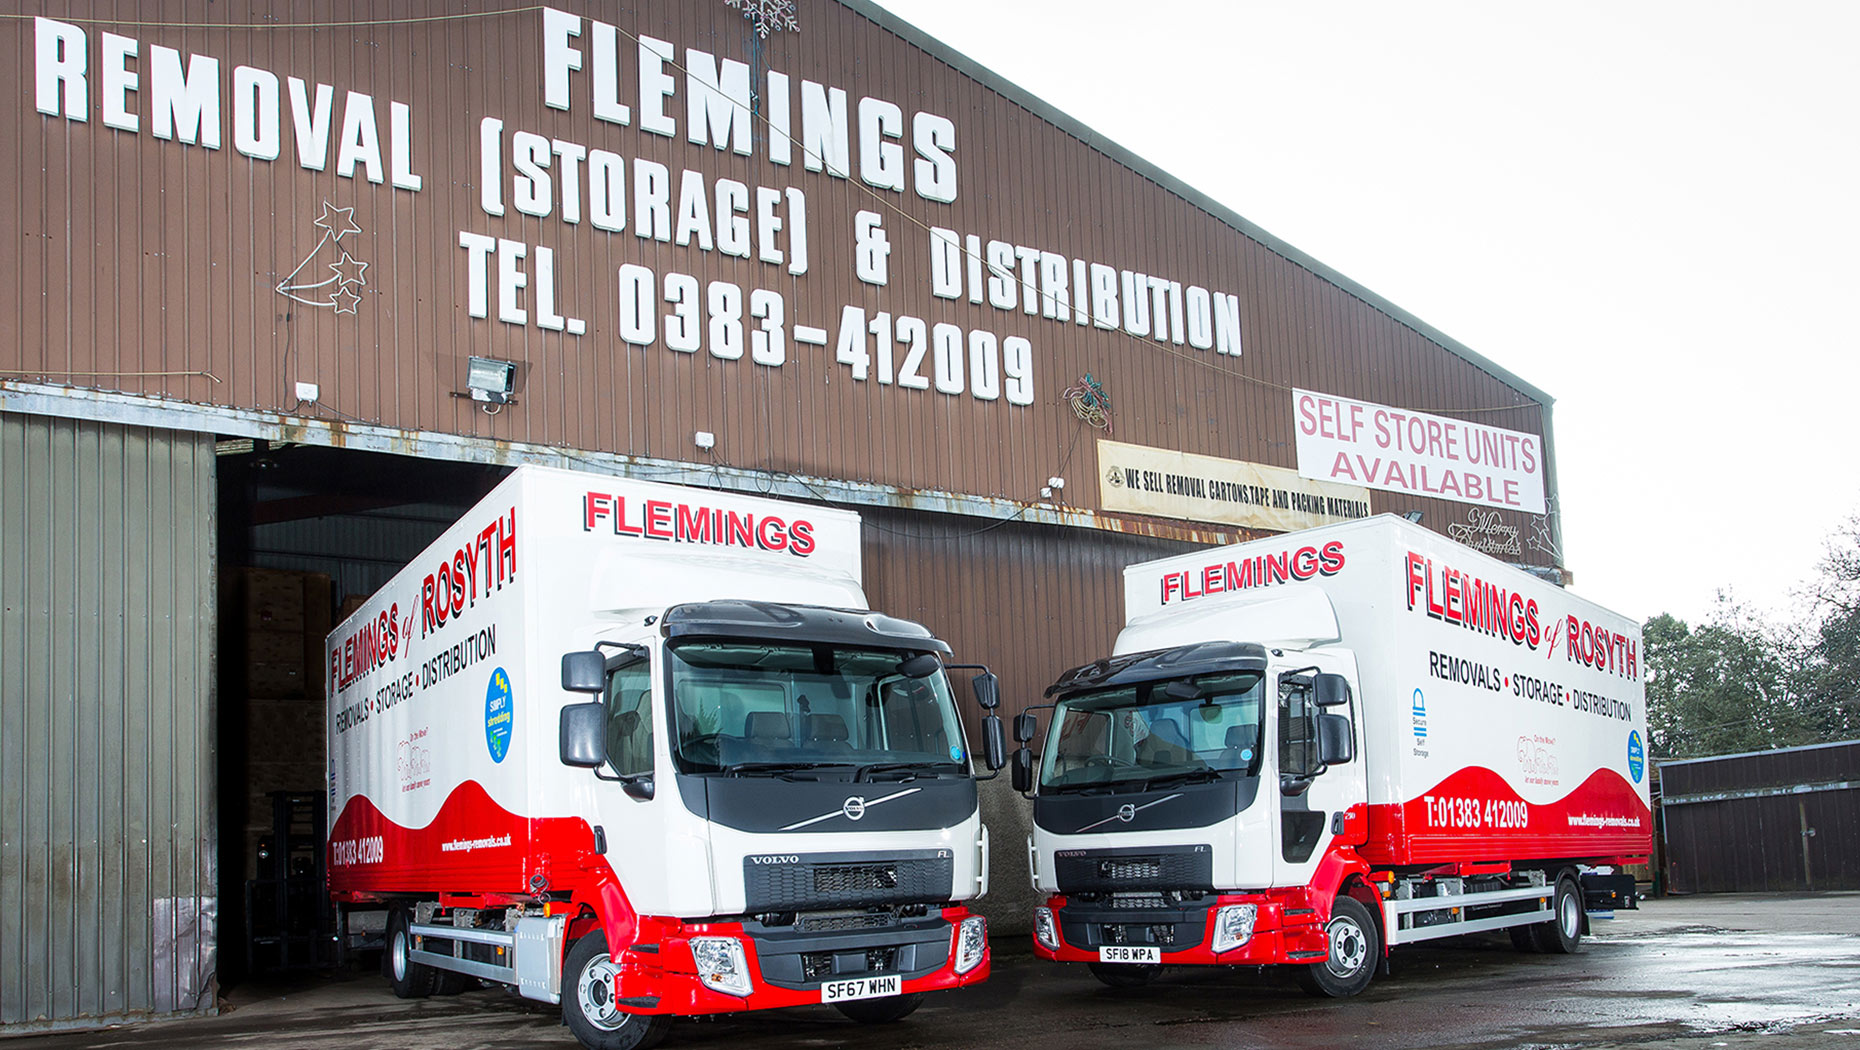 Volvo trucks' return to Flemings of Rosyth is a moving story